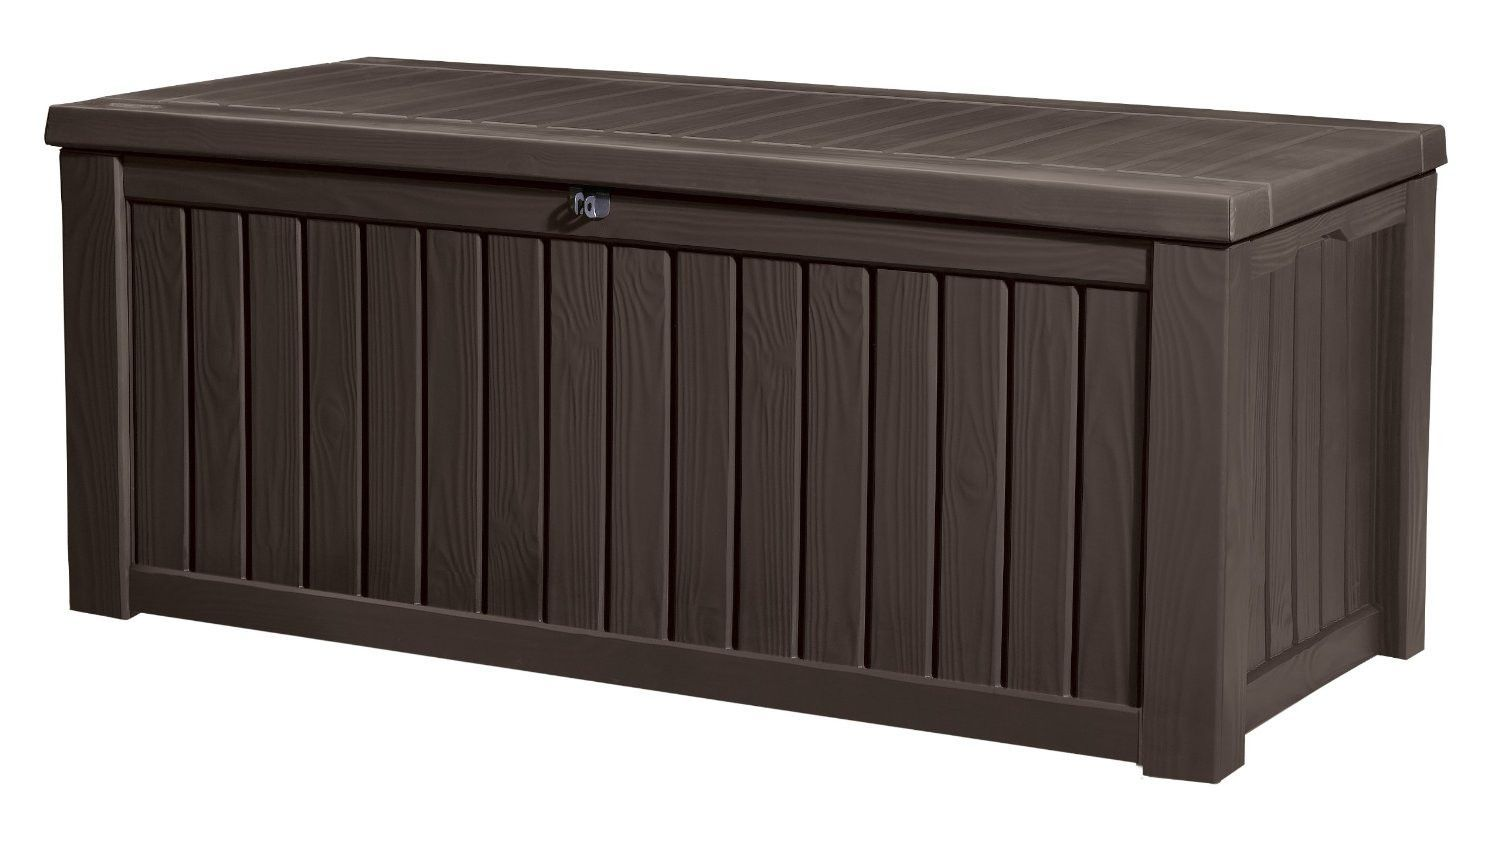 Keter Rockwood Deck Box 150 Gallon Outdoor Storage Boxes Patio